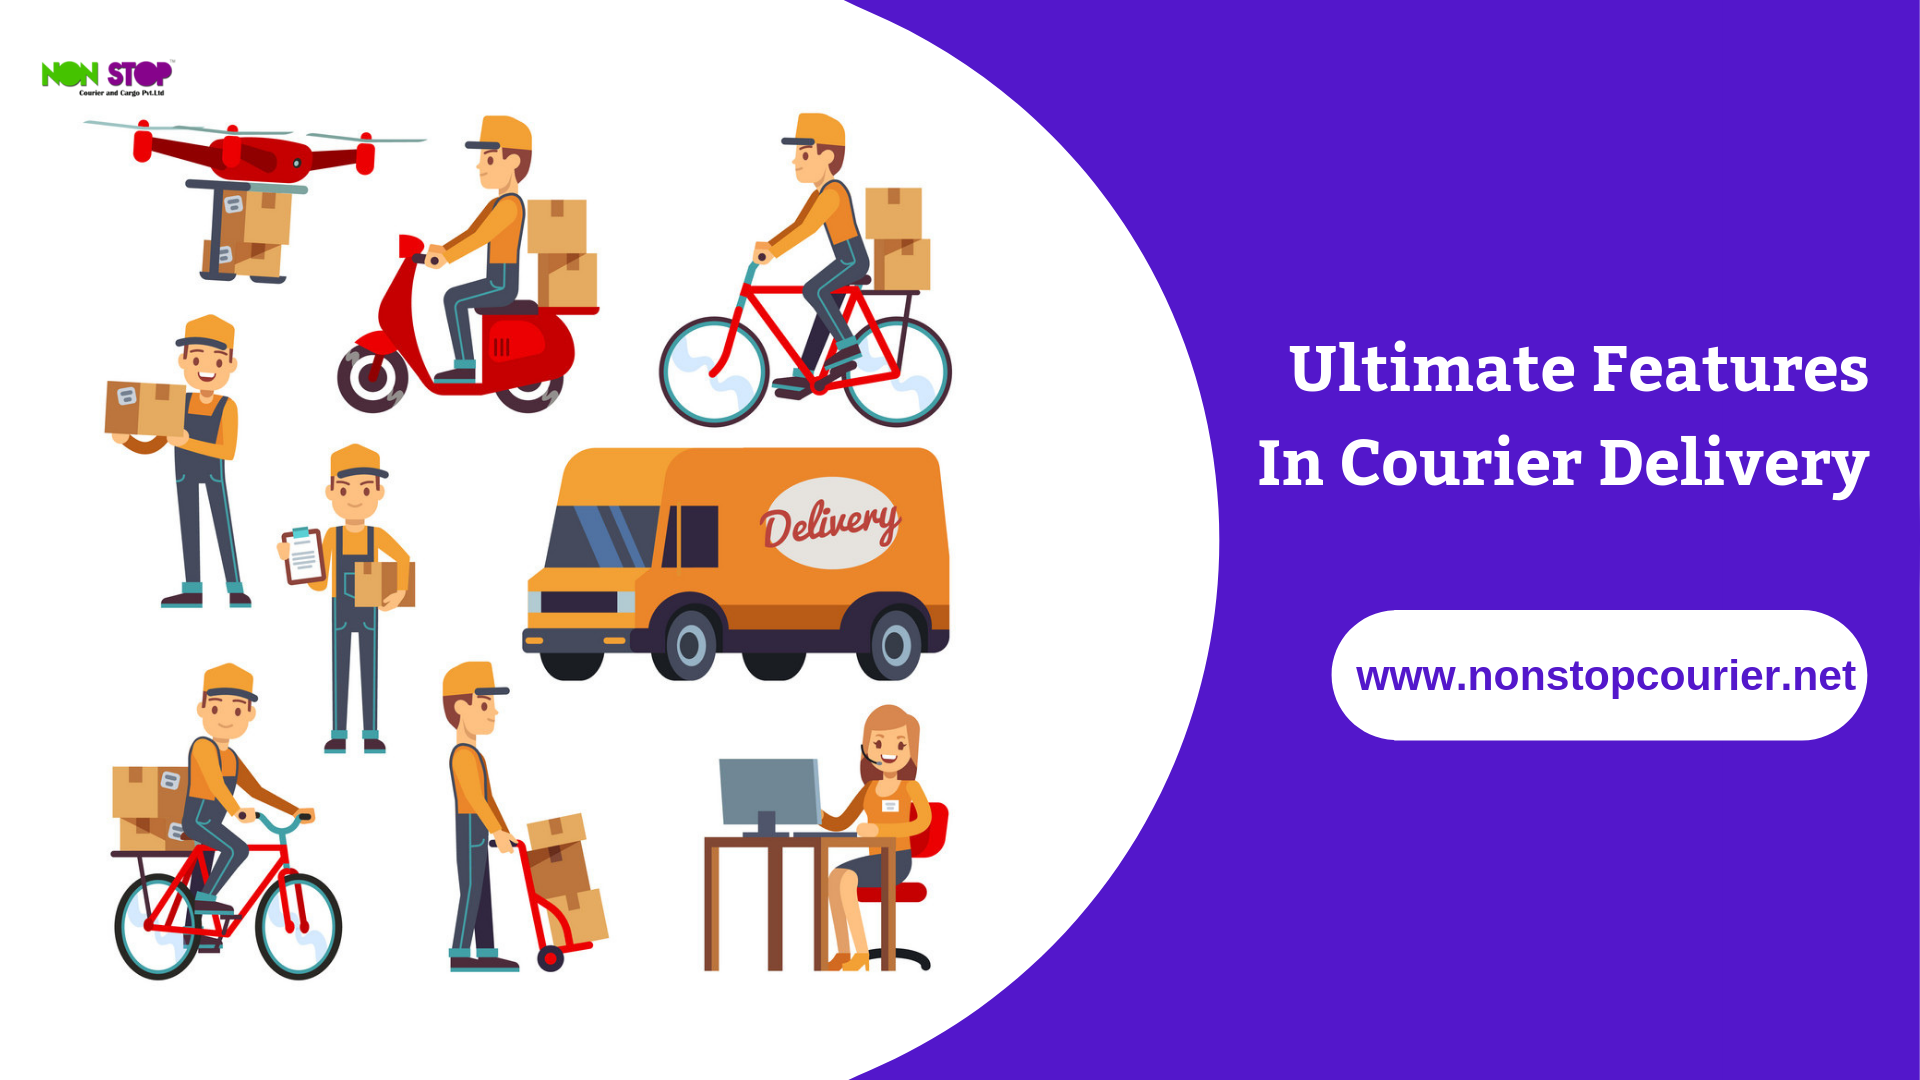 Nonstop courier is the south Asia\'s best courier services.